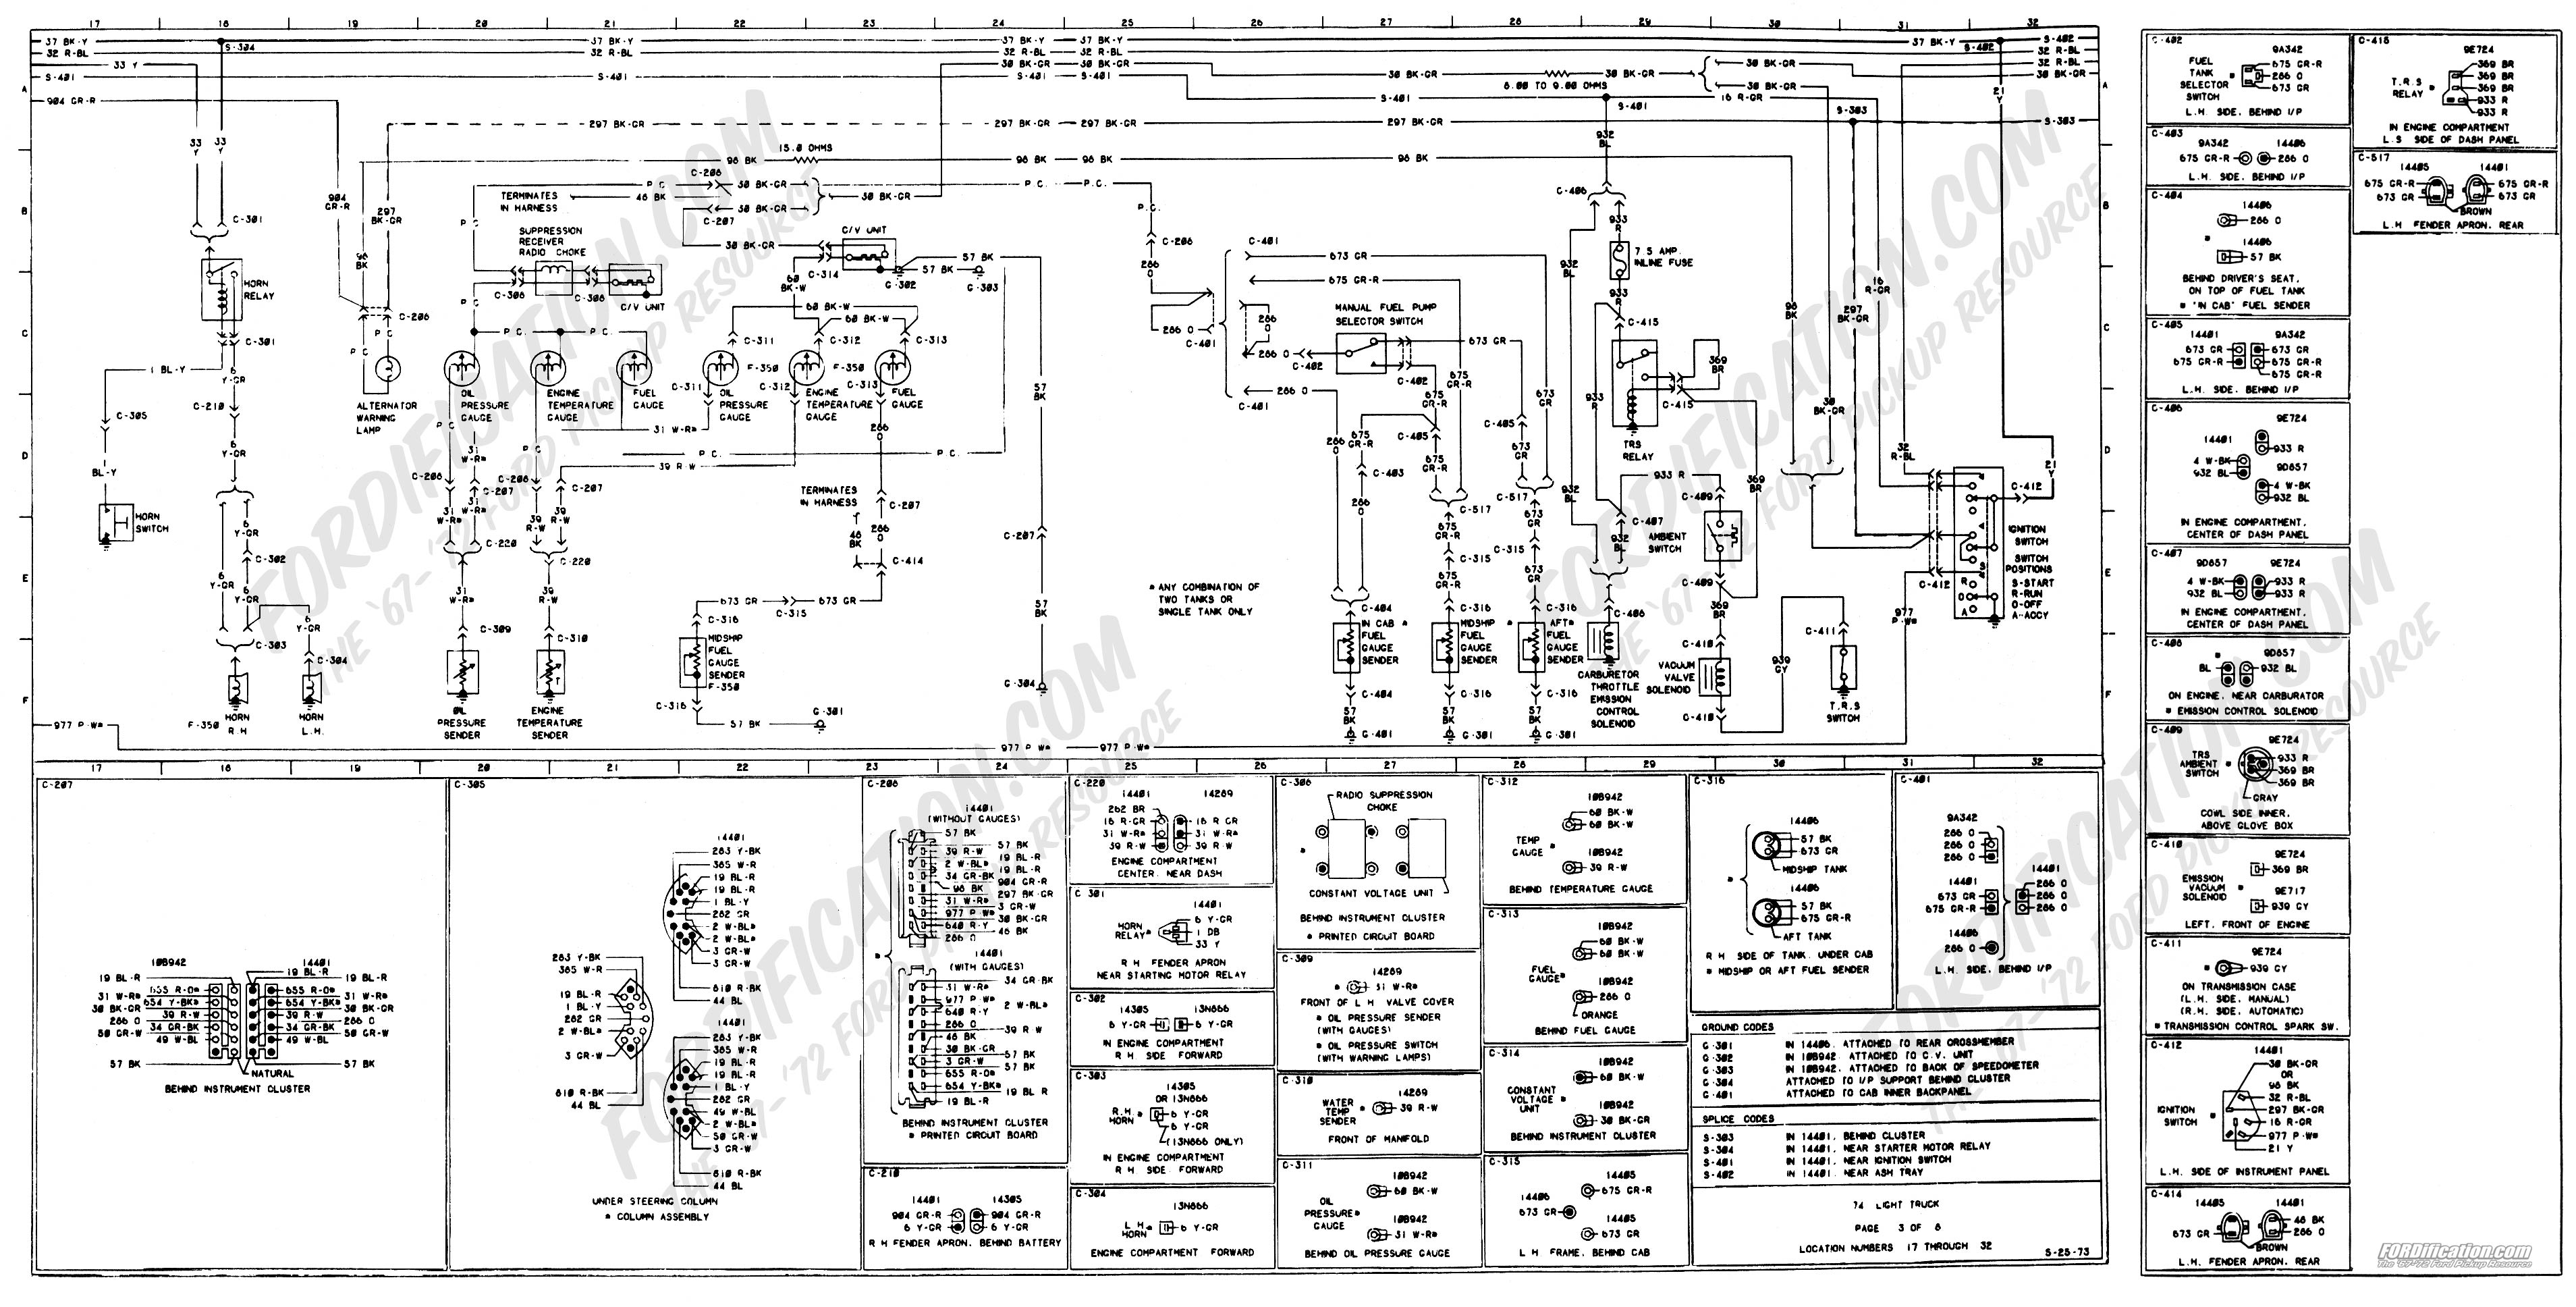 wiring_74master_3of8 1973 1979 ford truck wiring diagrams & schematics fordification net In a 98 Dodge Dakota Wiring Harness at creativeand.co